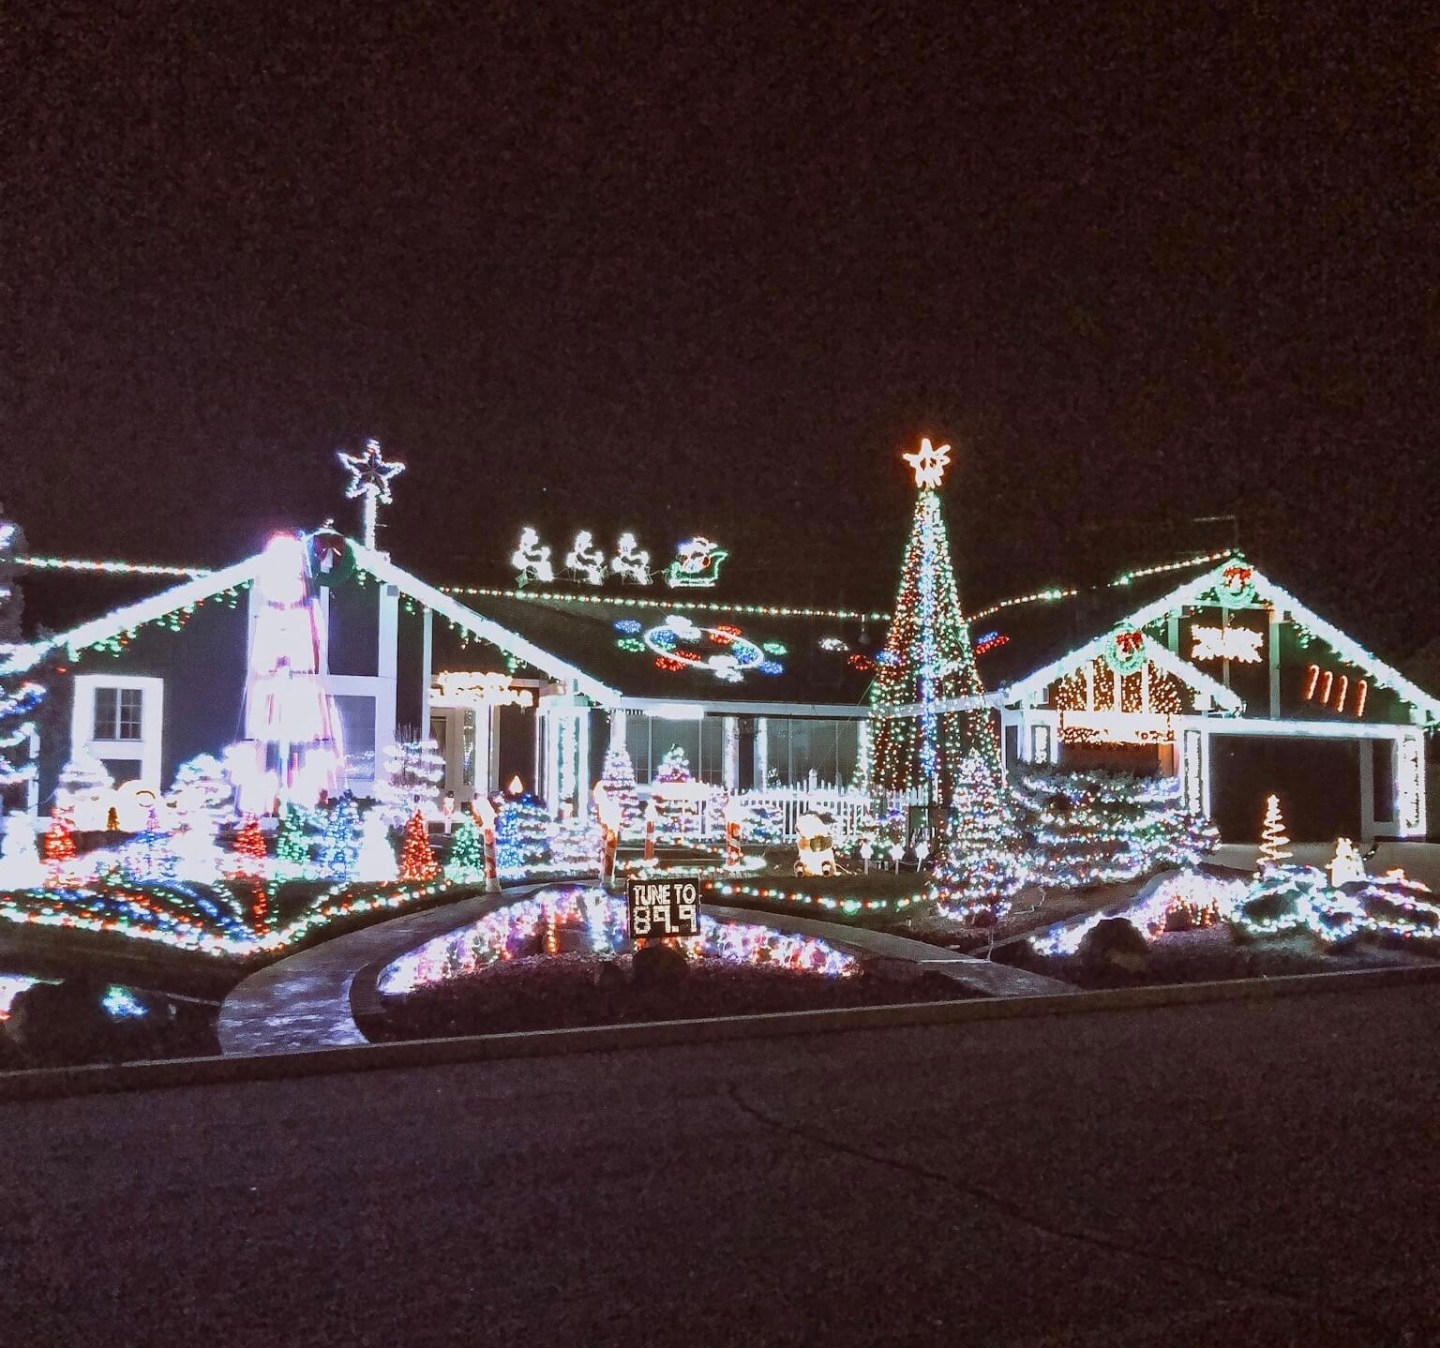 Best Christmas Decorations Cold Dprings Nv 2020 Christmas Light Hotspots | Northern Nevada Moms